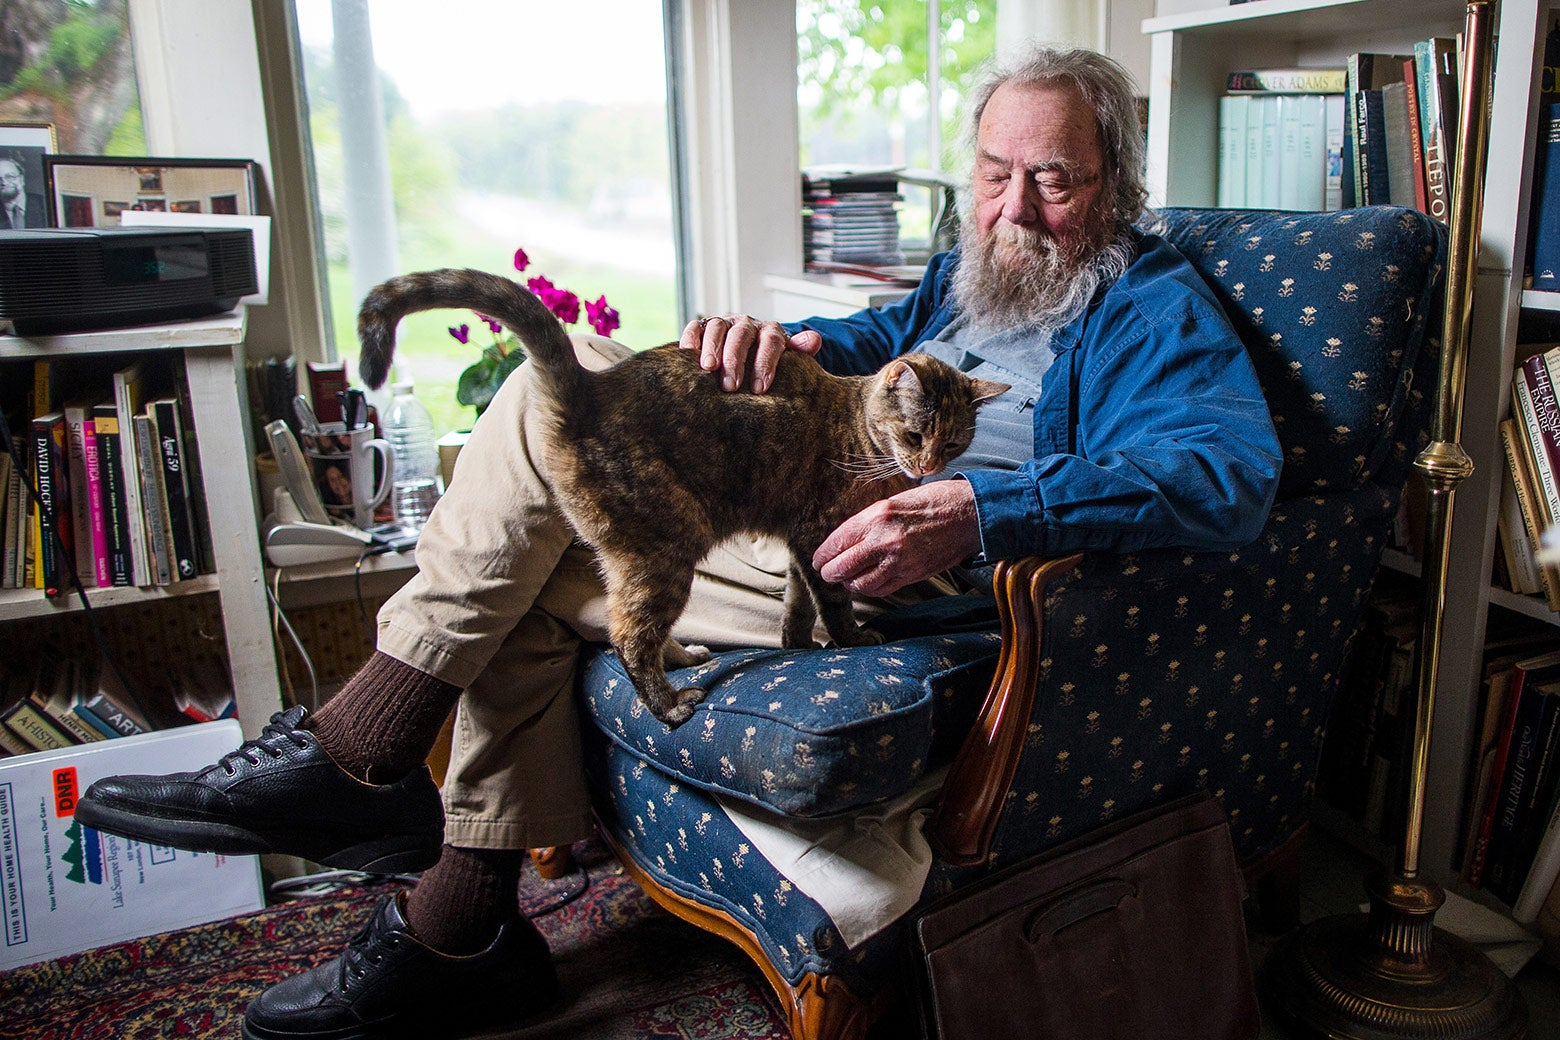 Donald Hall in a chair with a cat on his lap.